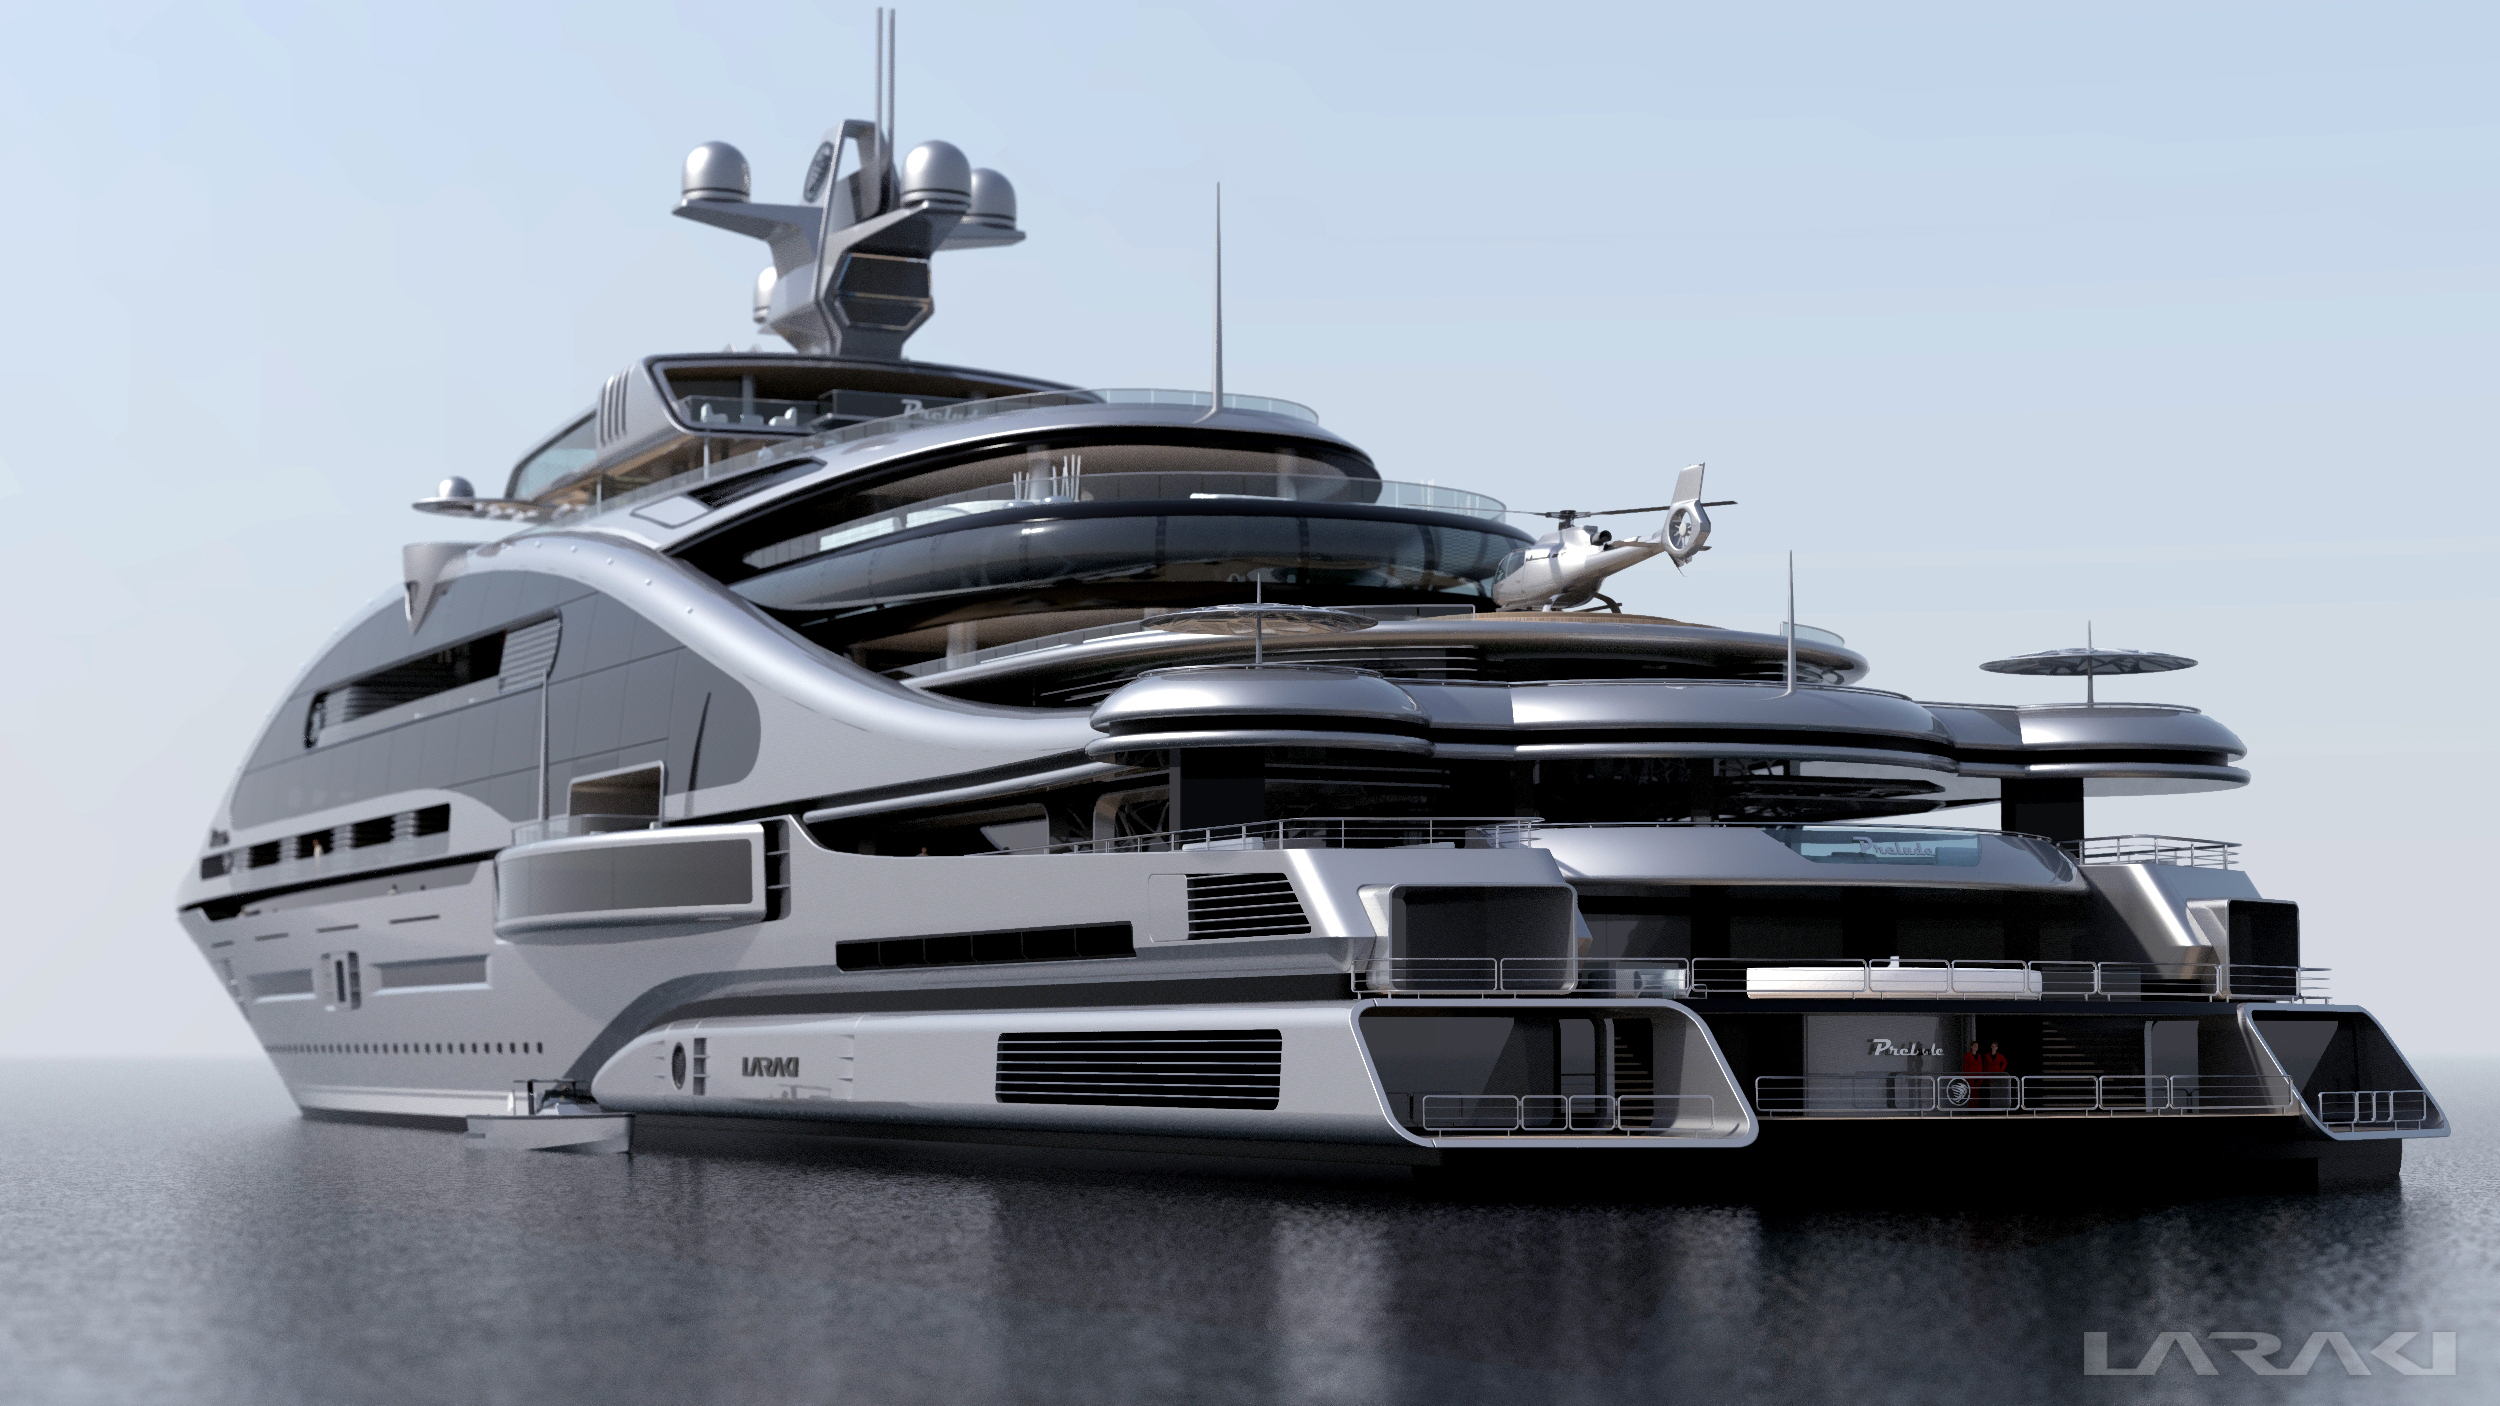 http://www.charterworld.com/news/wp-content/uploads/2012/08/Prelude-superyacht-rear-view.jpg